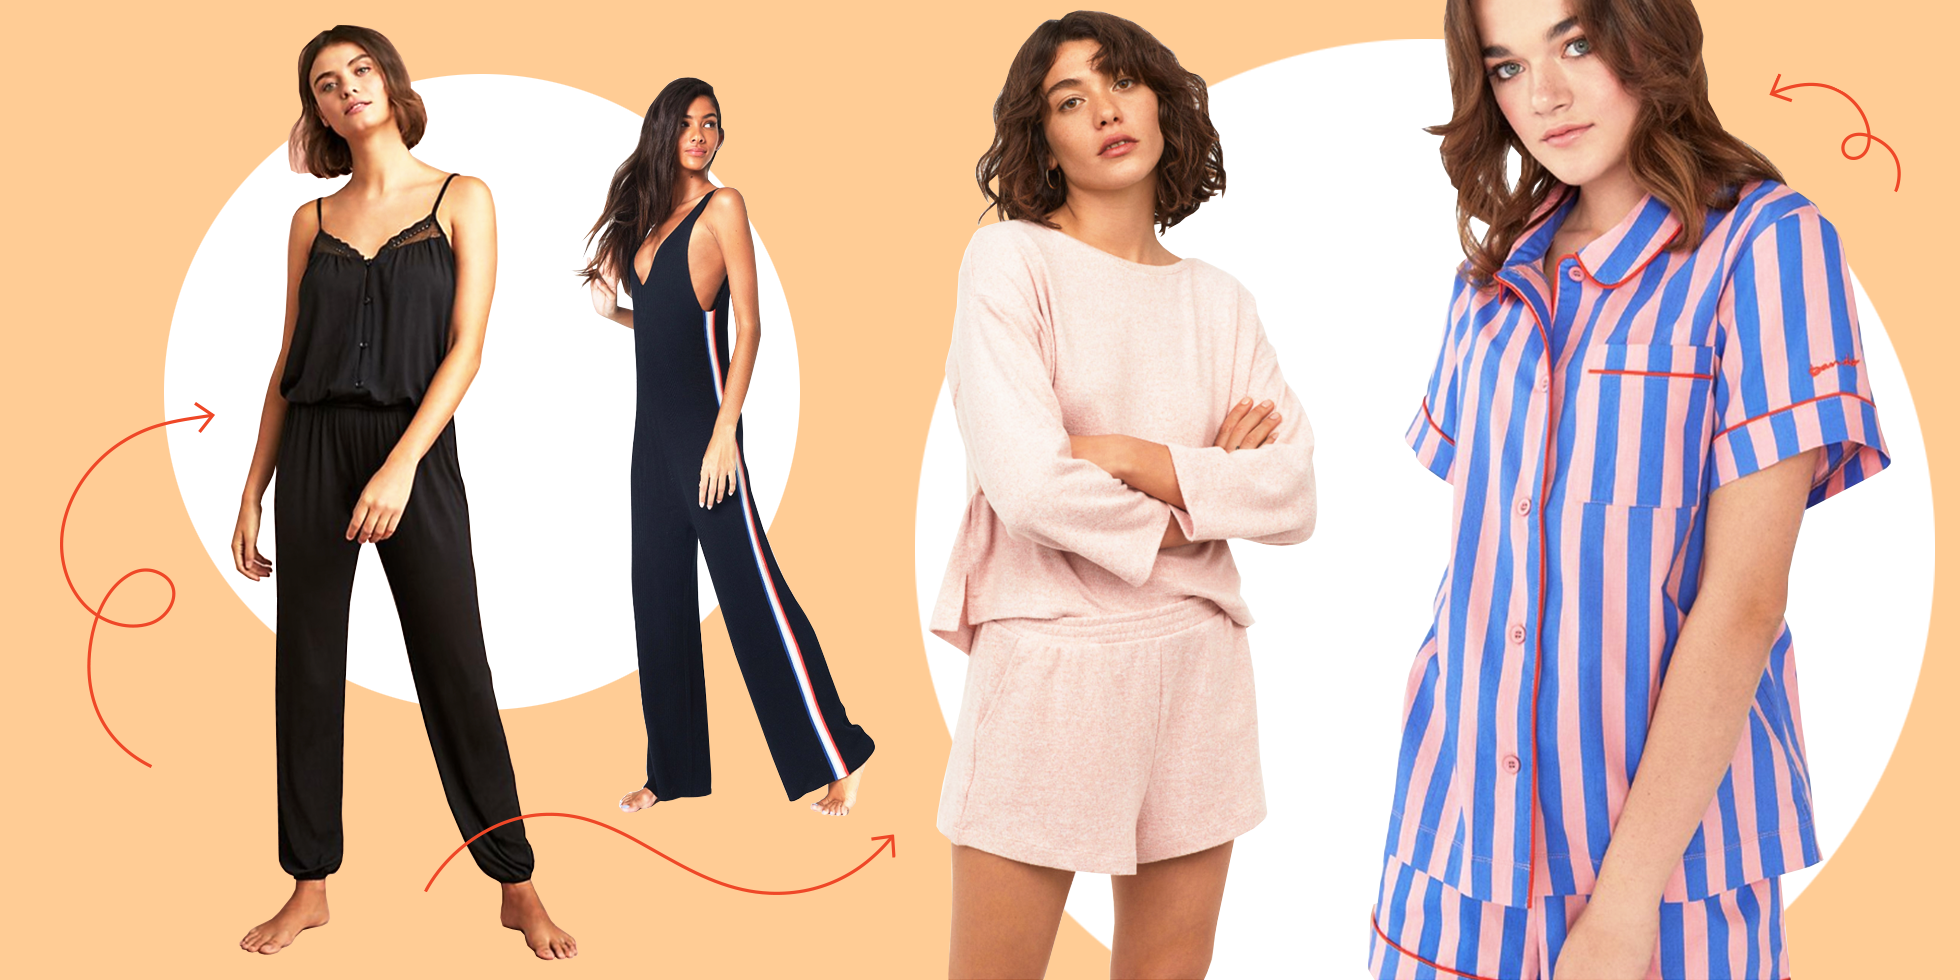 344372e947 These Are the Best Pajamas to Buy Your Bridesmaids if You're Over Floral  Robes